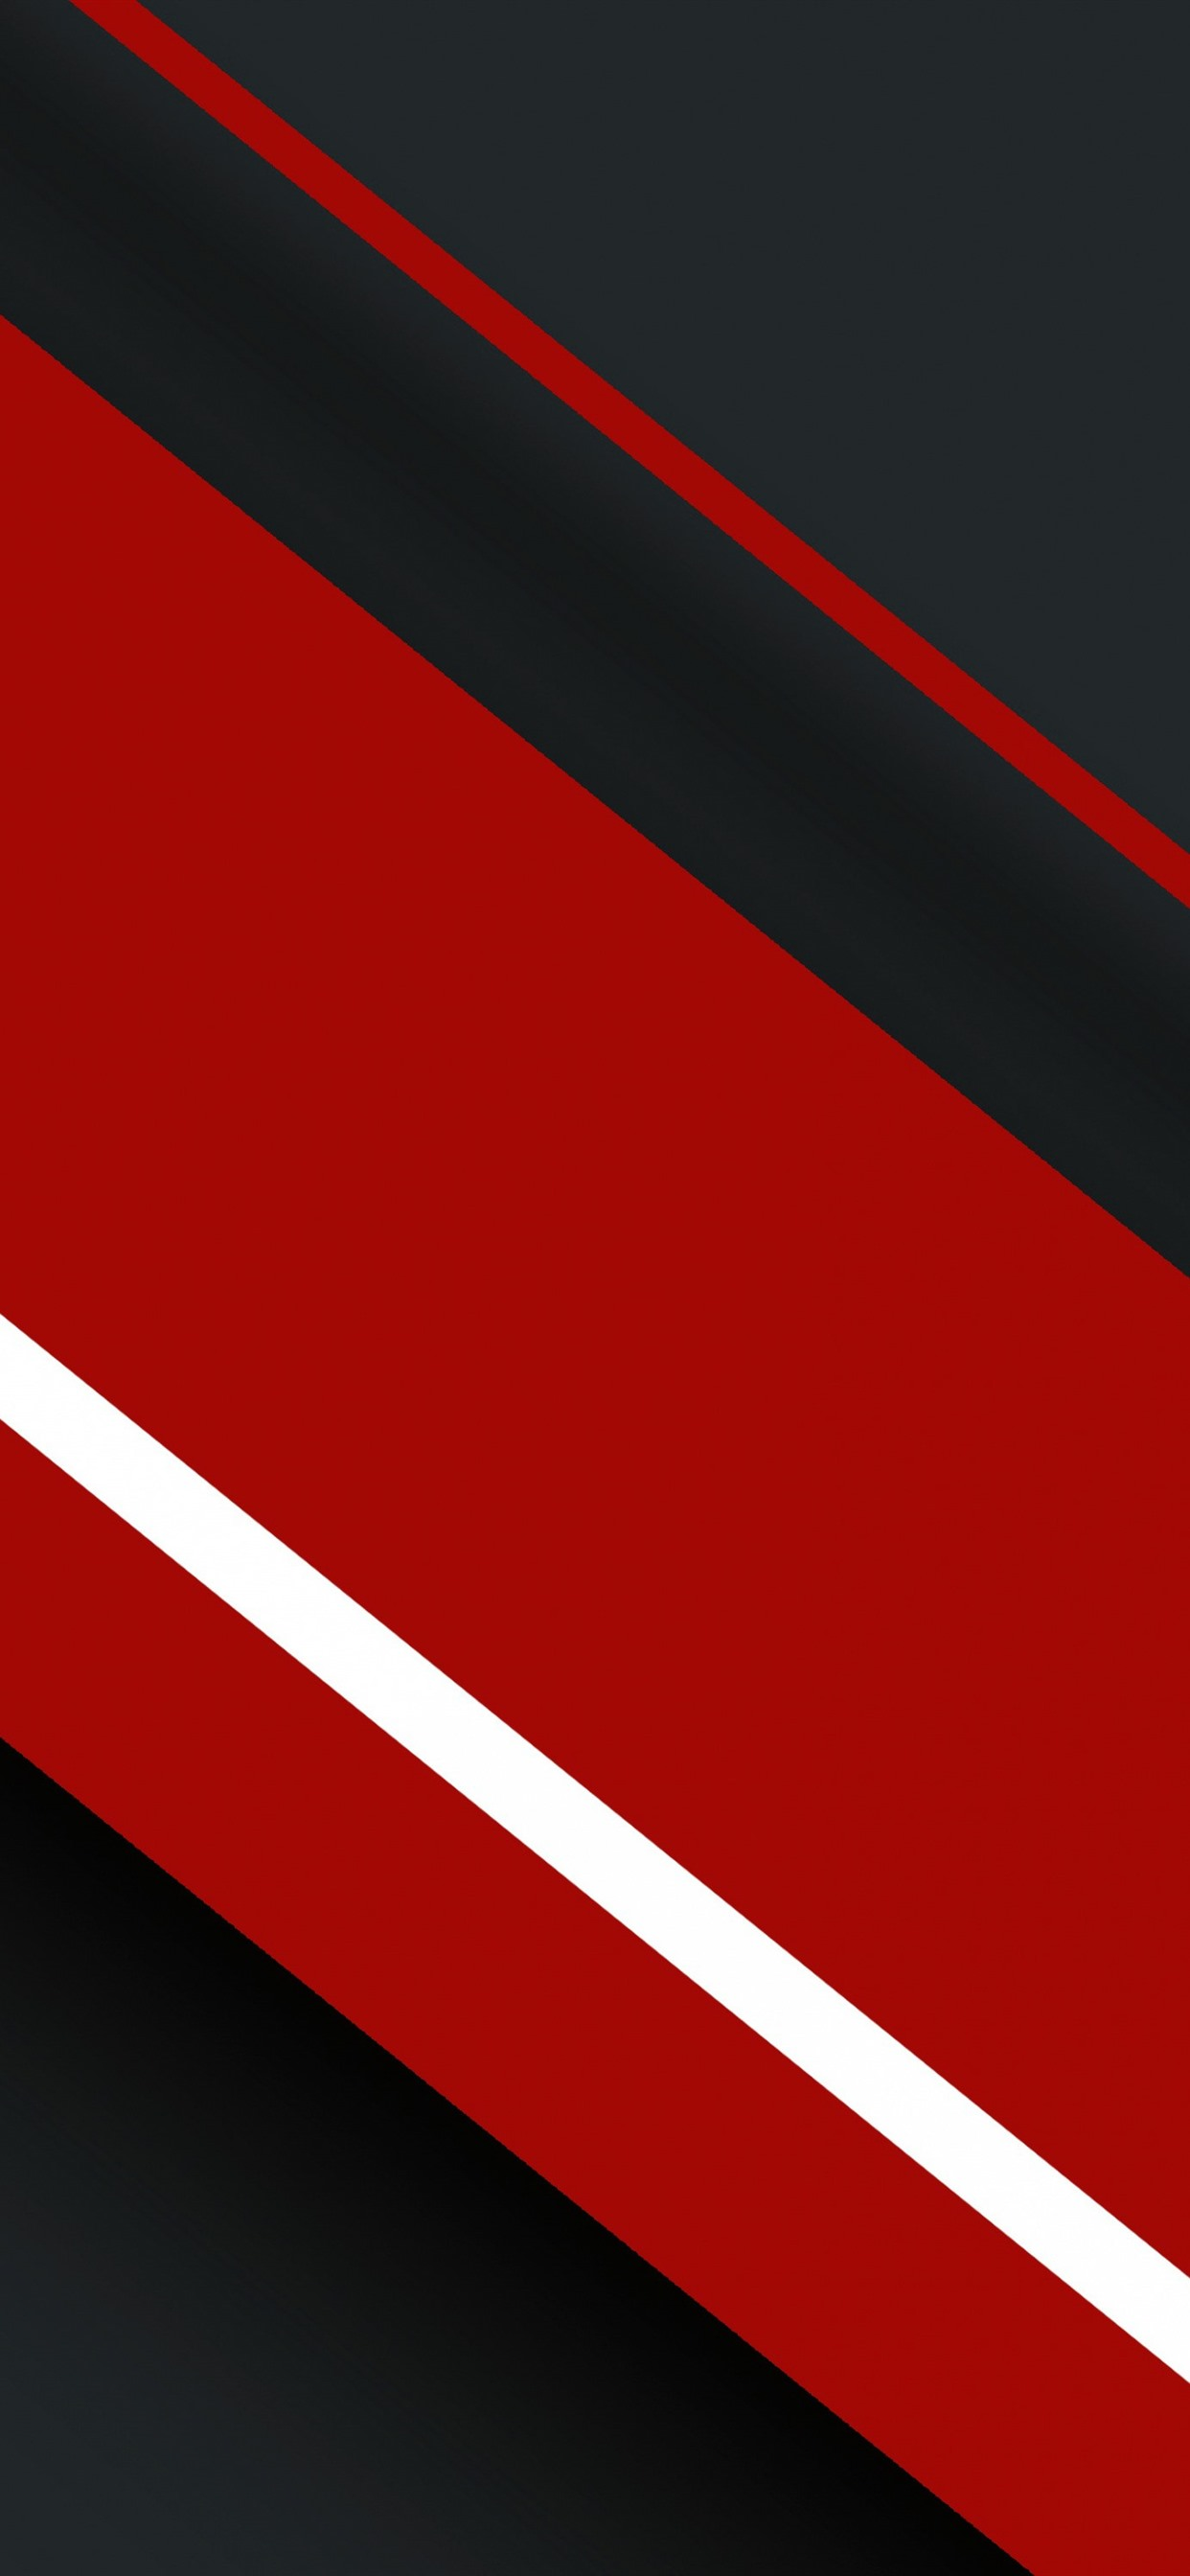 Red And Black Stripes Abstract Picture 1242x2688 Iphone Xs